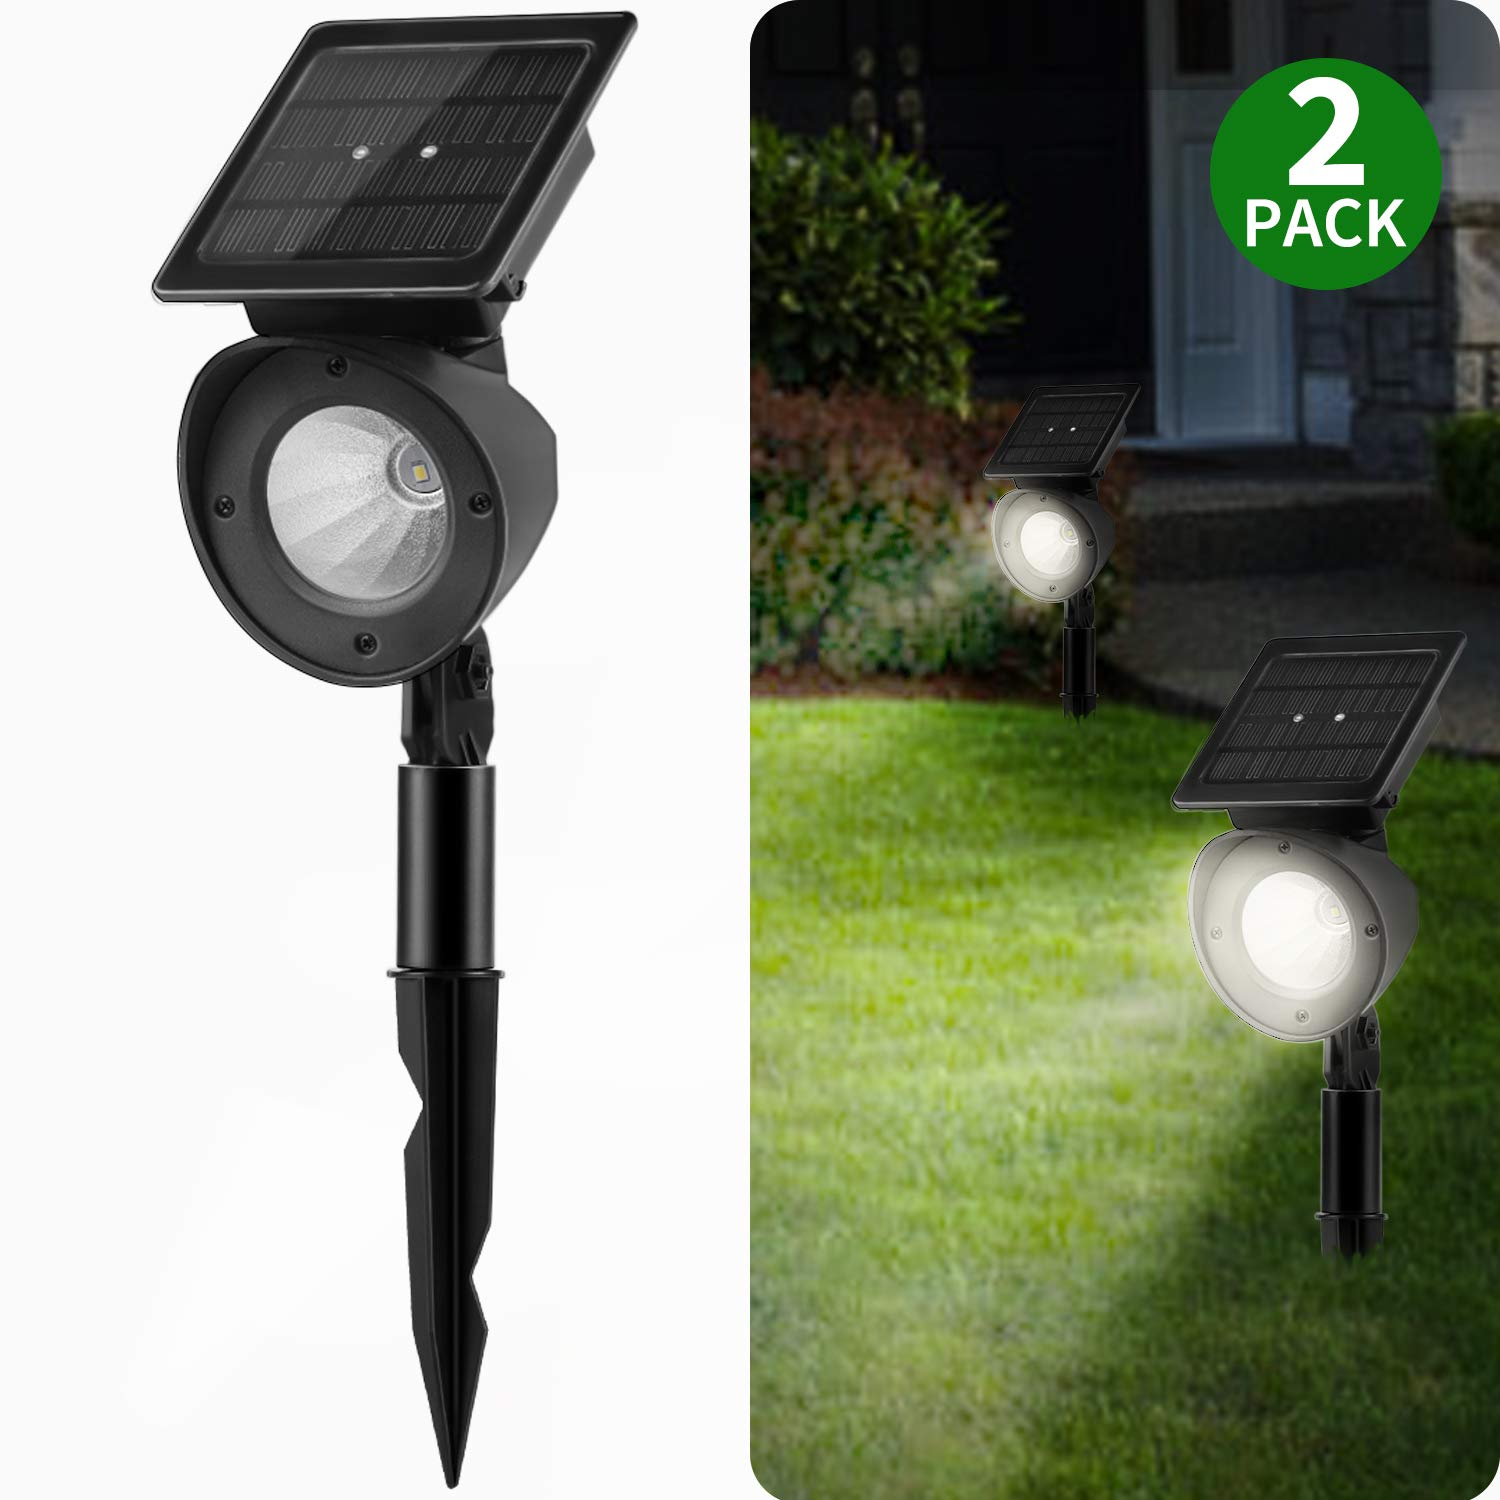 Solar Landscape Spotlights Brightown Waterproof Adjustable Outdoor Led Spot Lights Wireless Automatic Landscaping Light For Yard Driveway Garden Pathway Lawn Walkway Pool Patio Pack Of 2